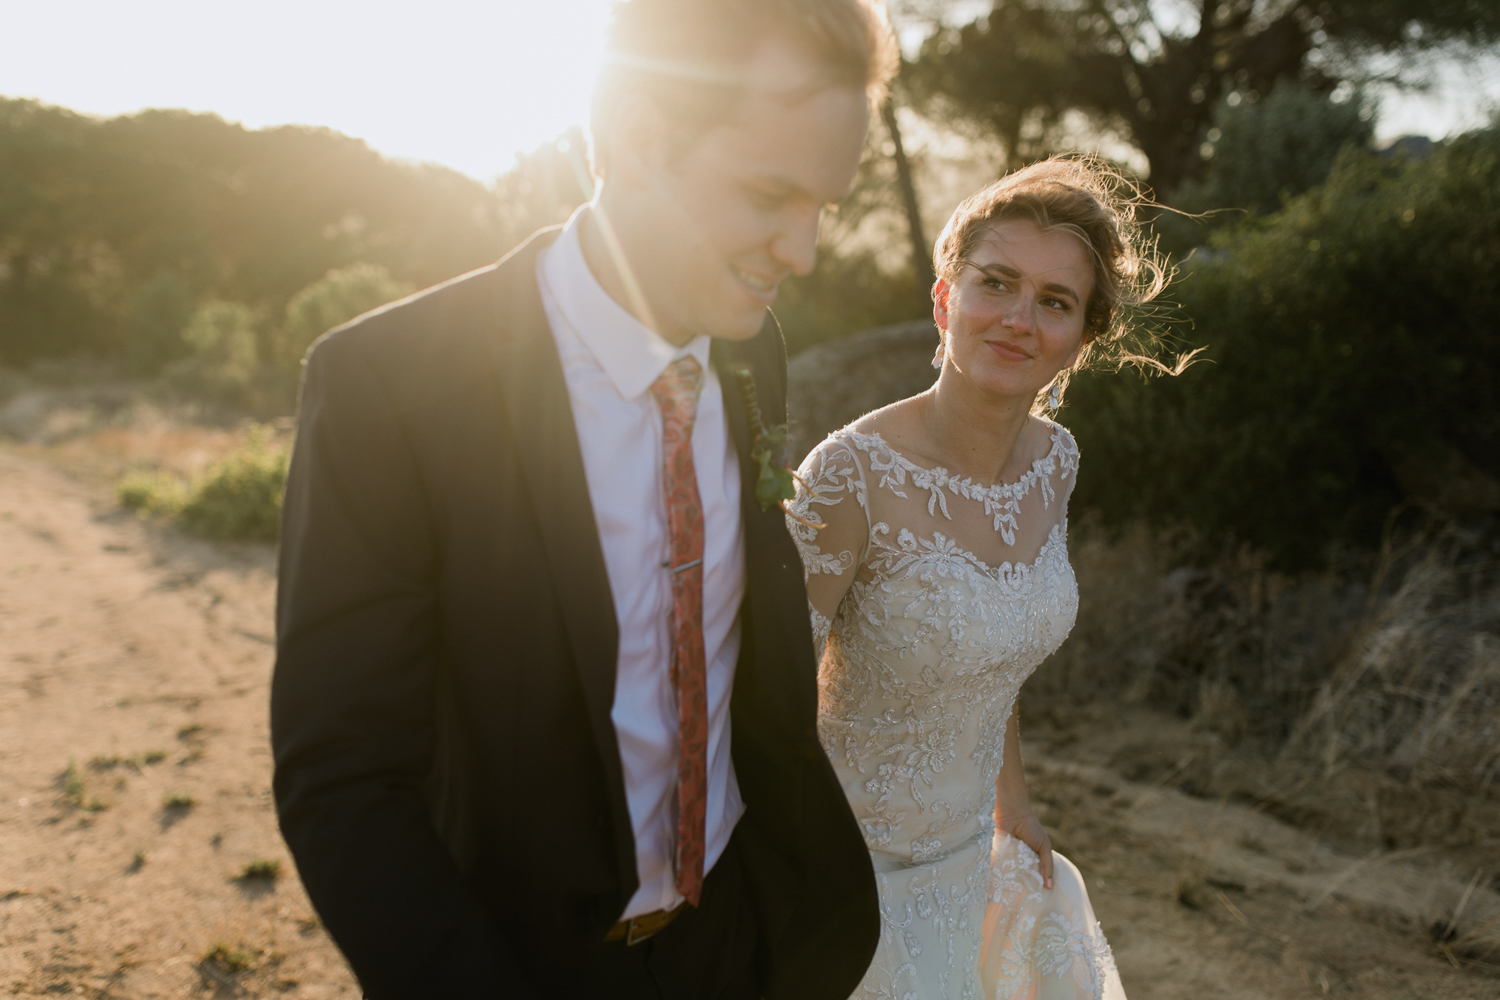 heisvisual-wedding-photographers-documentary-stellenbosch-south-africa023.jpg